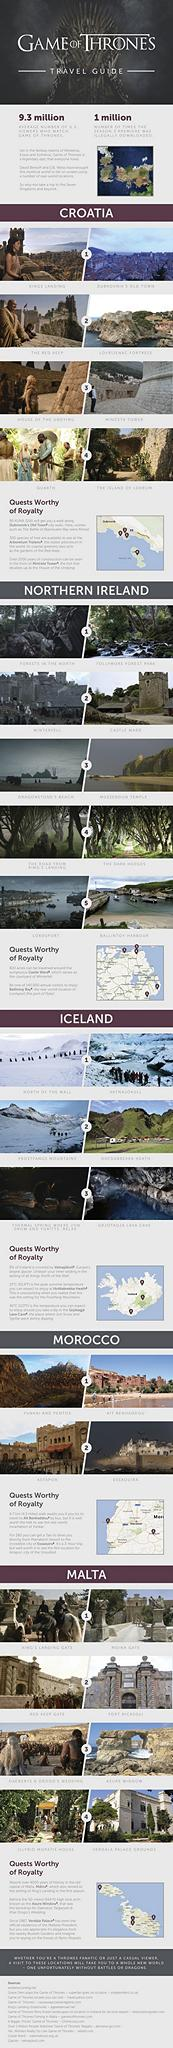 game-of-thrones-travel-guide-infographic_525ea8736b1e9